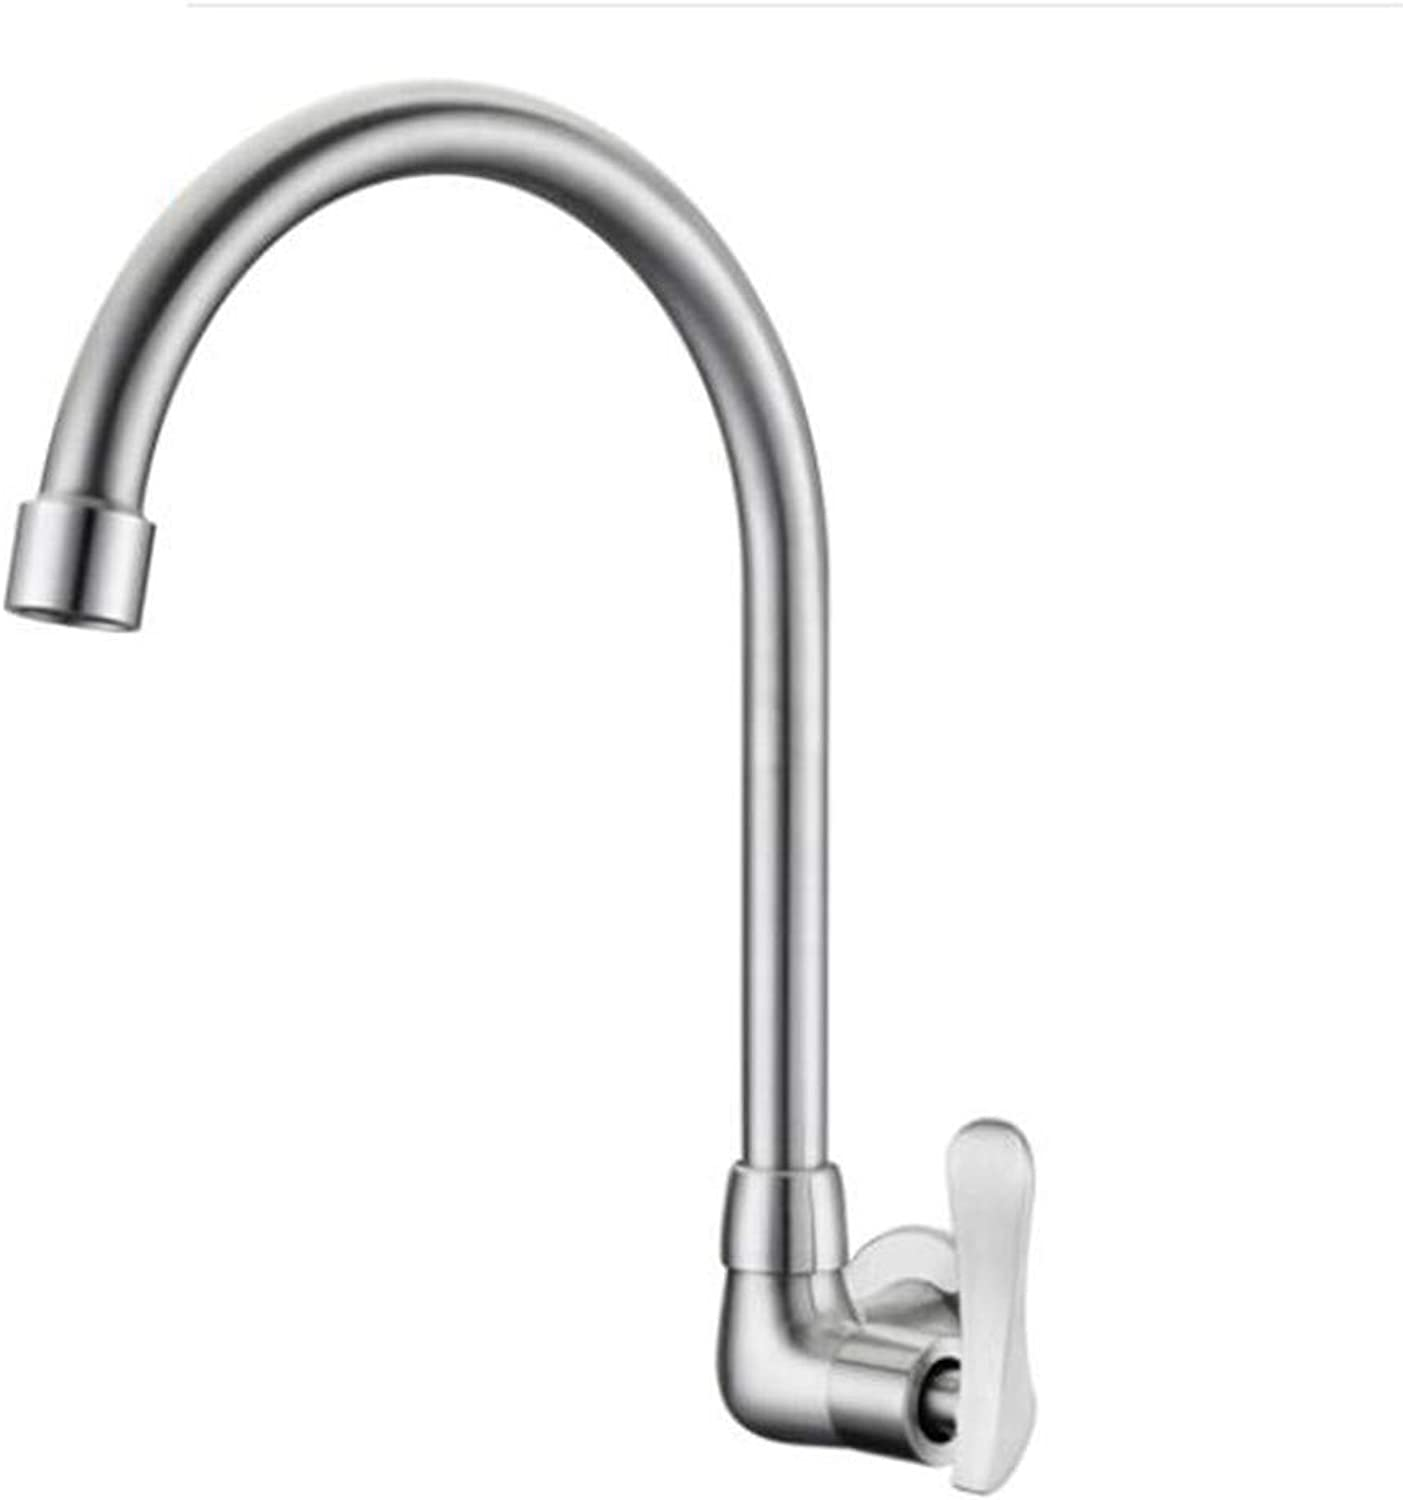 Bathroom Sink Basin Lever Mixer Tap 304 Stainless Steel Wall-Mounted Single-Cold Kitchen Washbasin Faucet Balcony Mop Pool Faucet